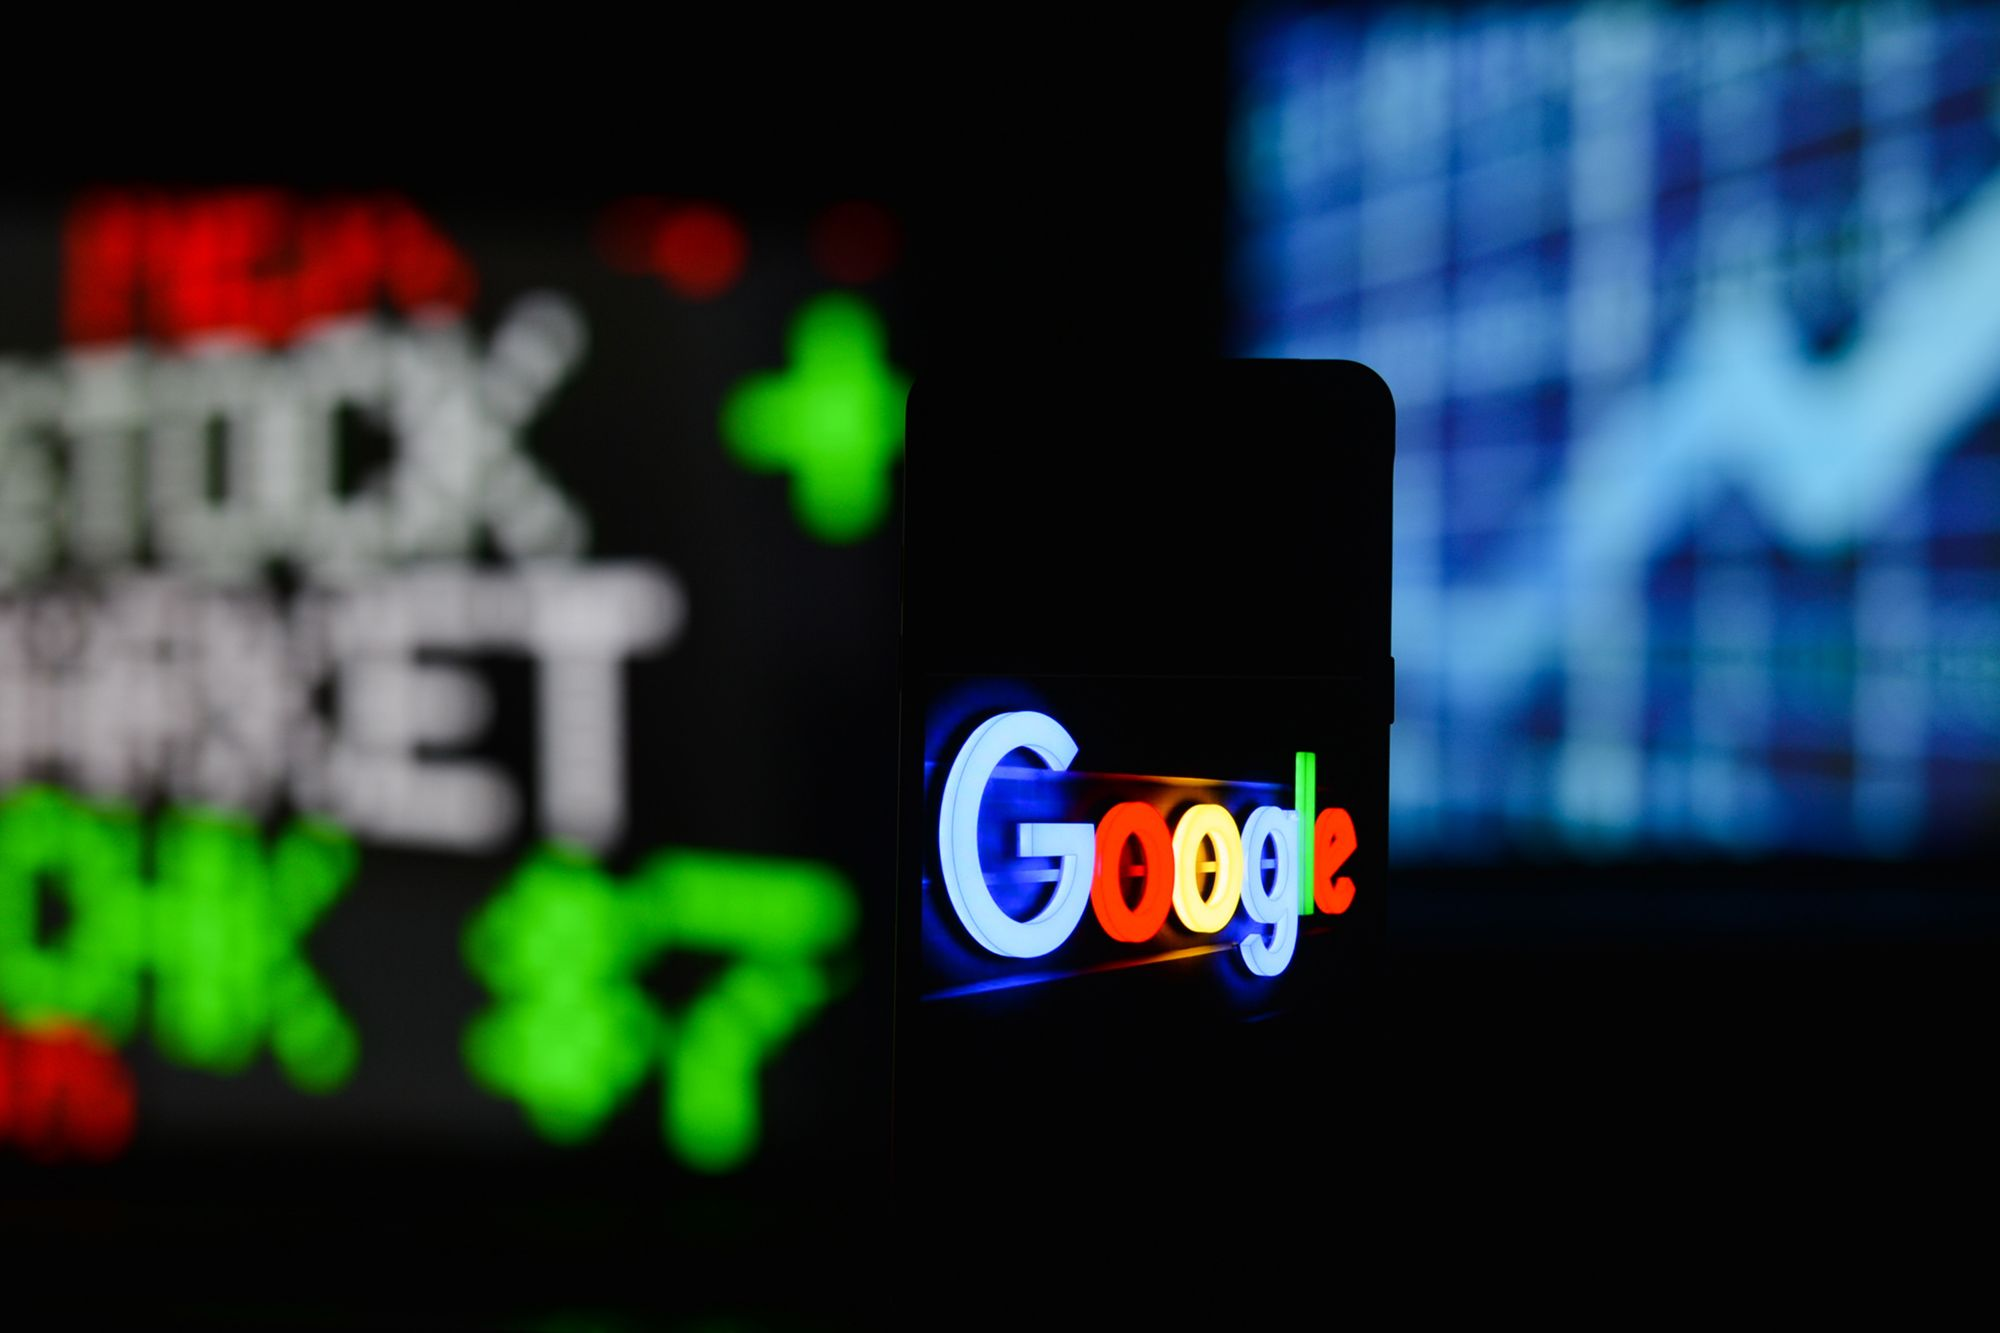 Google Misses Revenue Estimates, Has Worst Day on Stock Market Since 2012